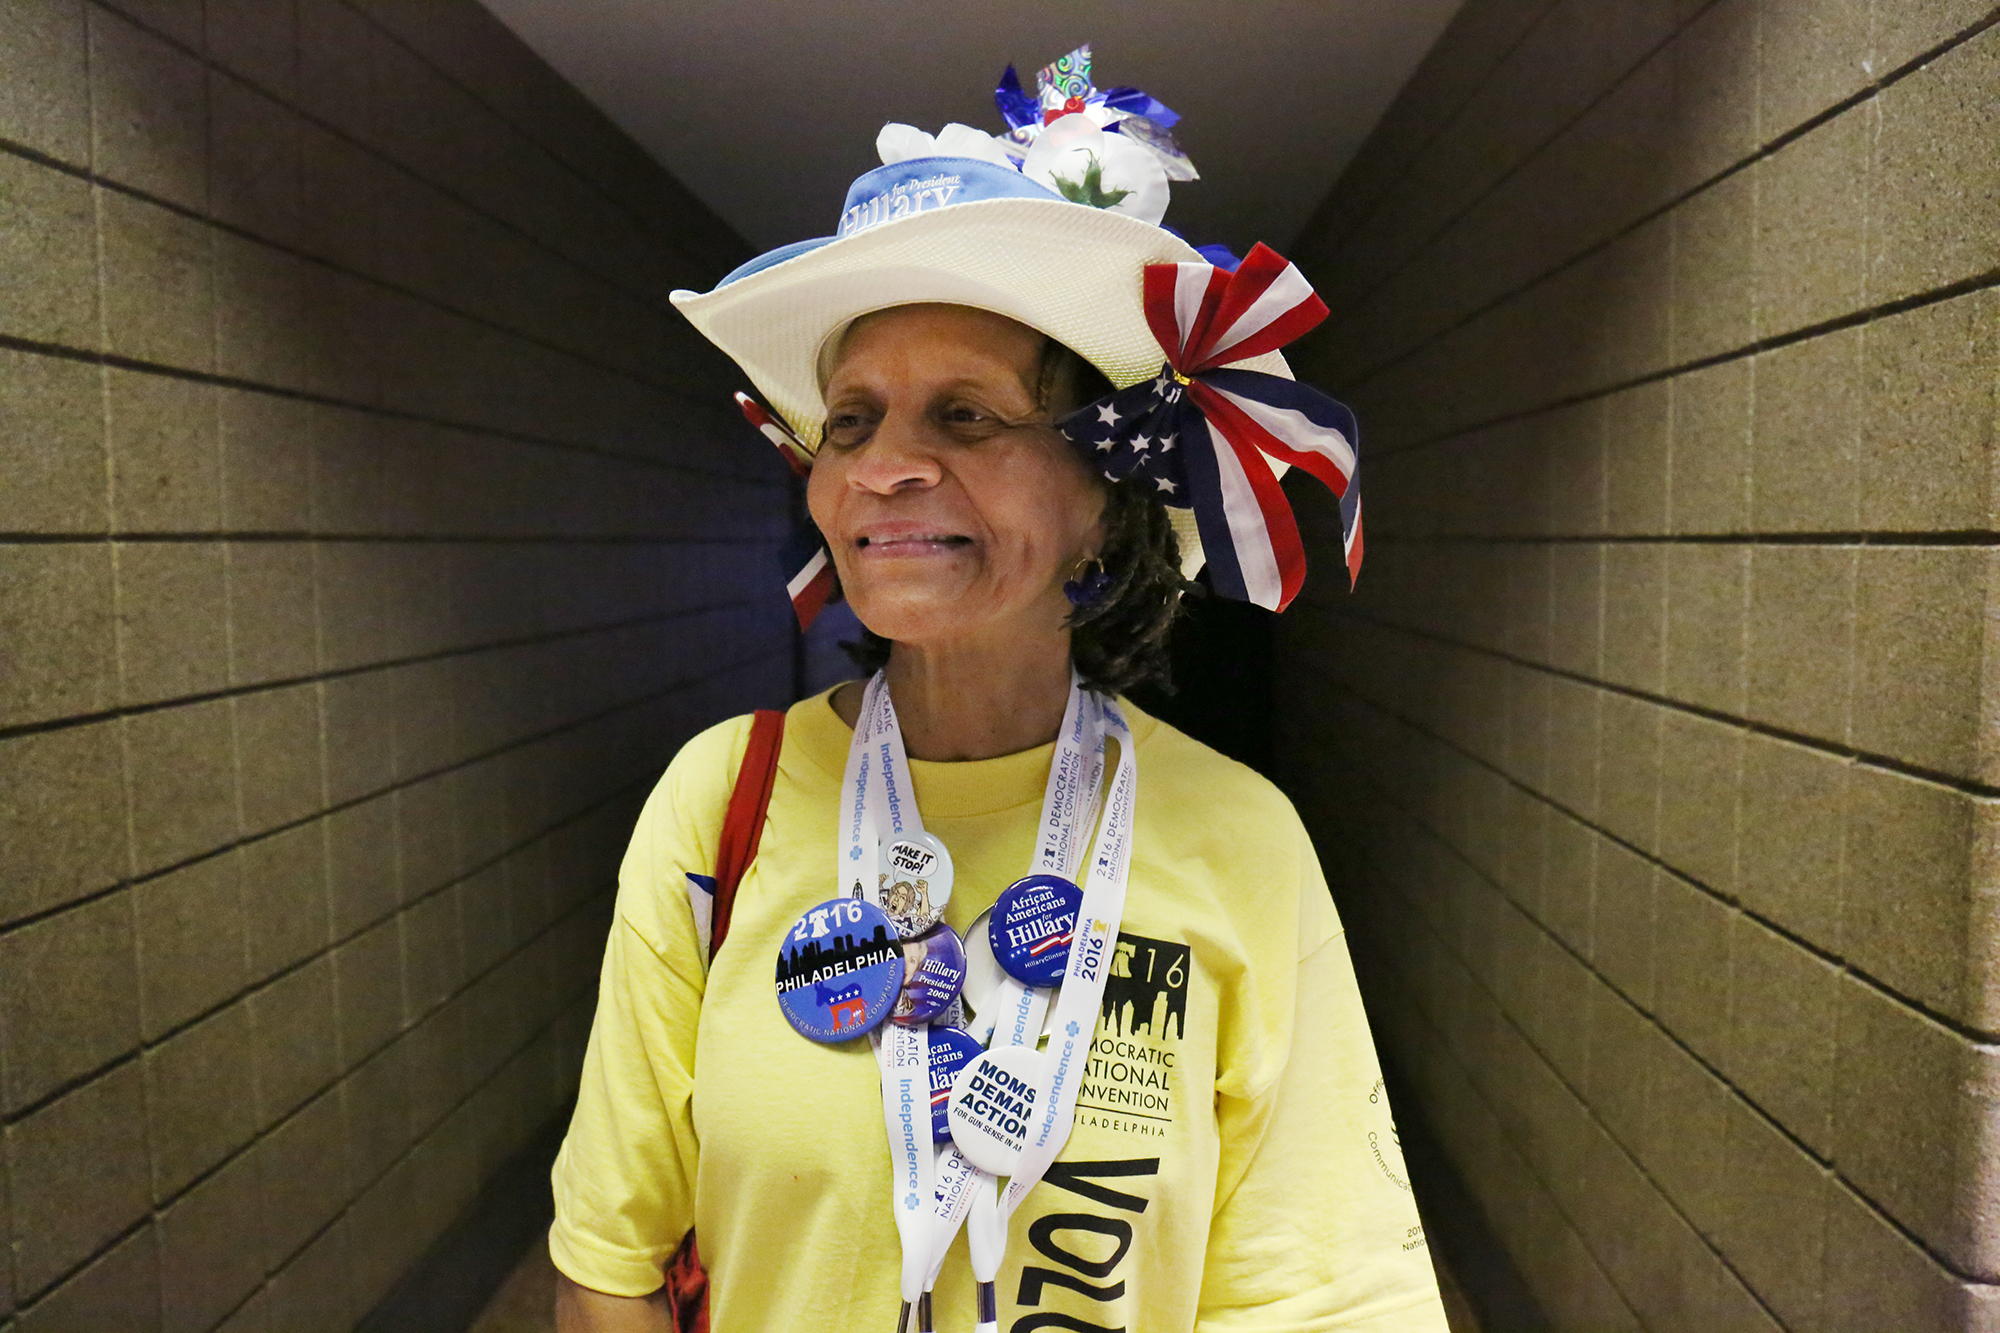 Bo Floyd, 62, is a schoolteacher, a Democratic National Convention volunteer and a Hillary Clinton supporter from Birmingham, Alabama. Photo by Abbey Oldham